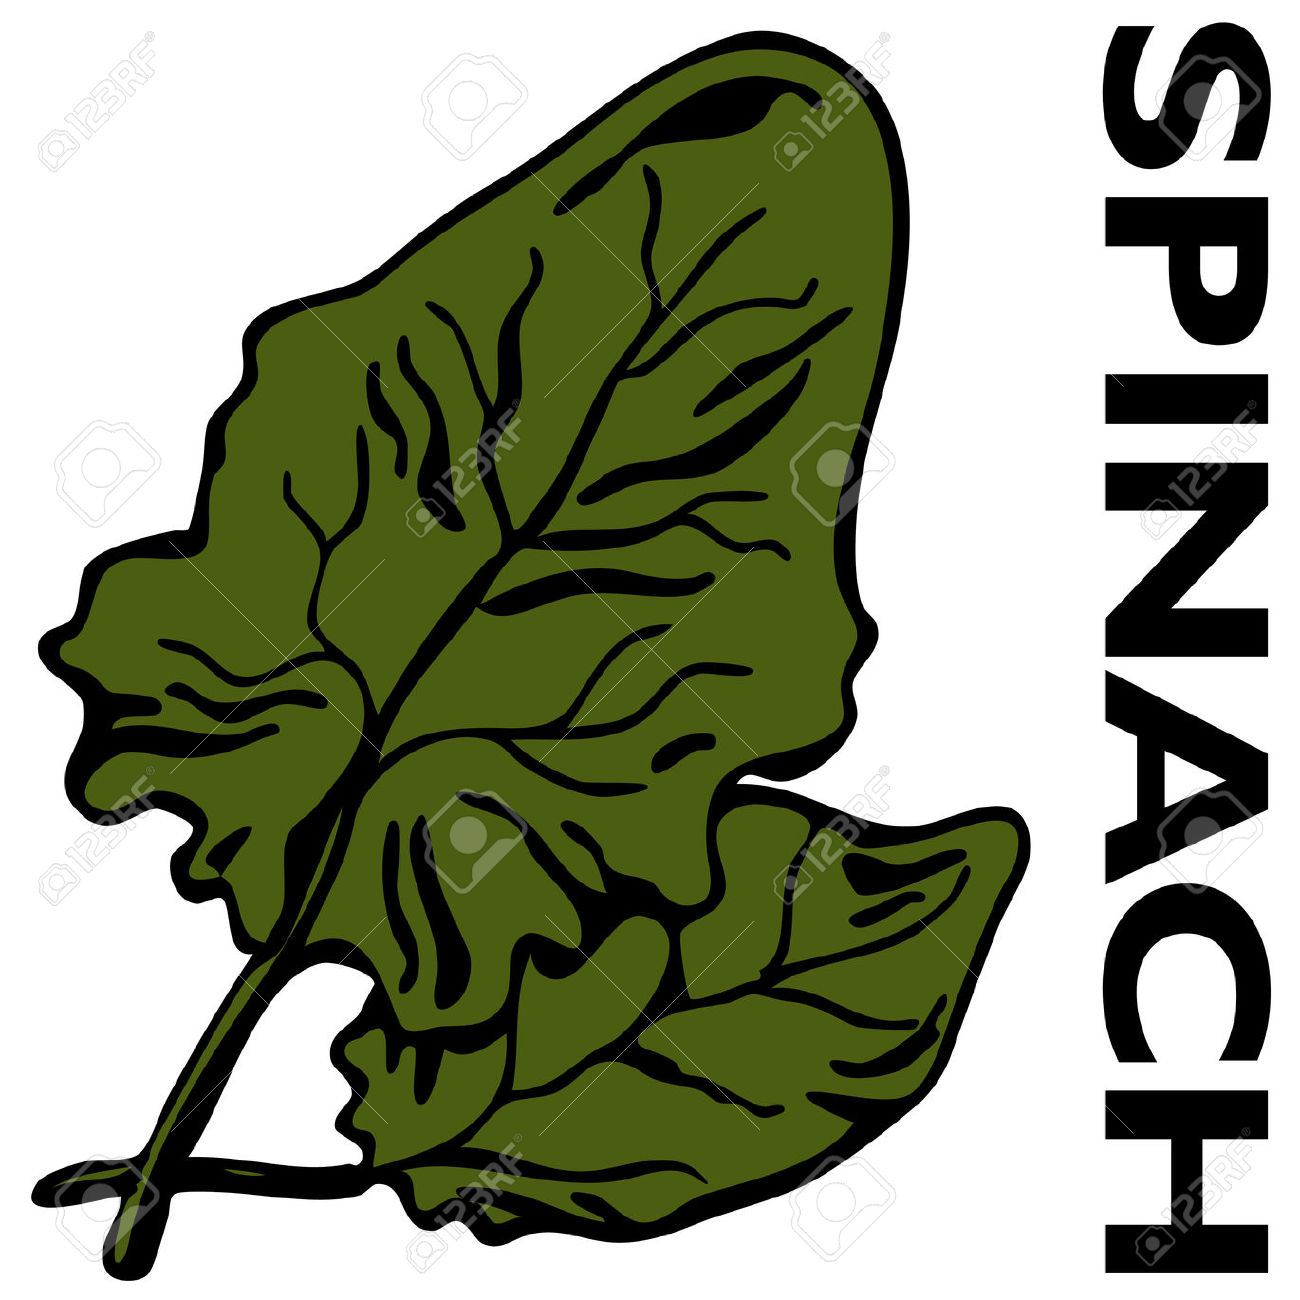 Spinach leaf clipart.